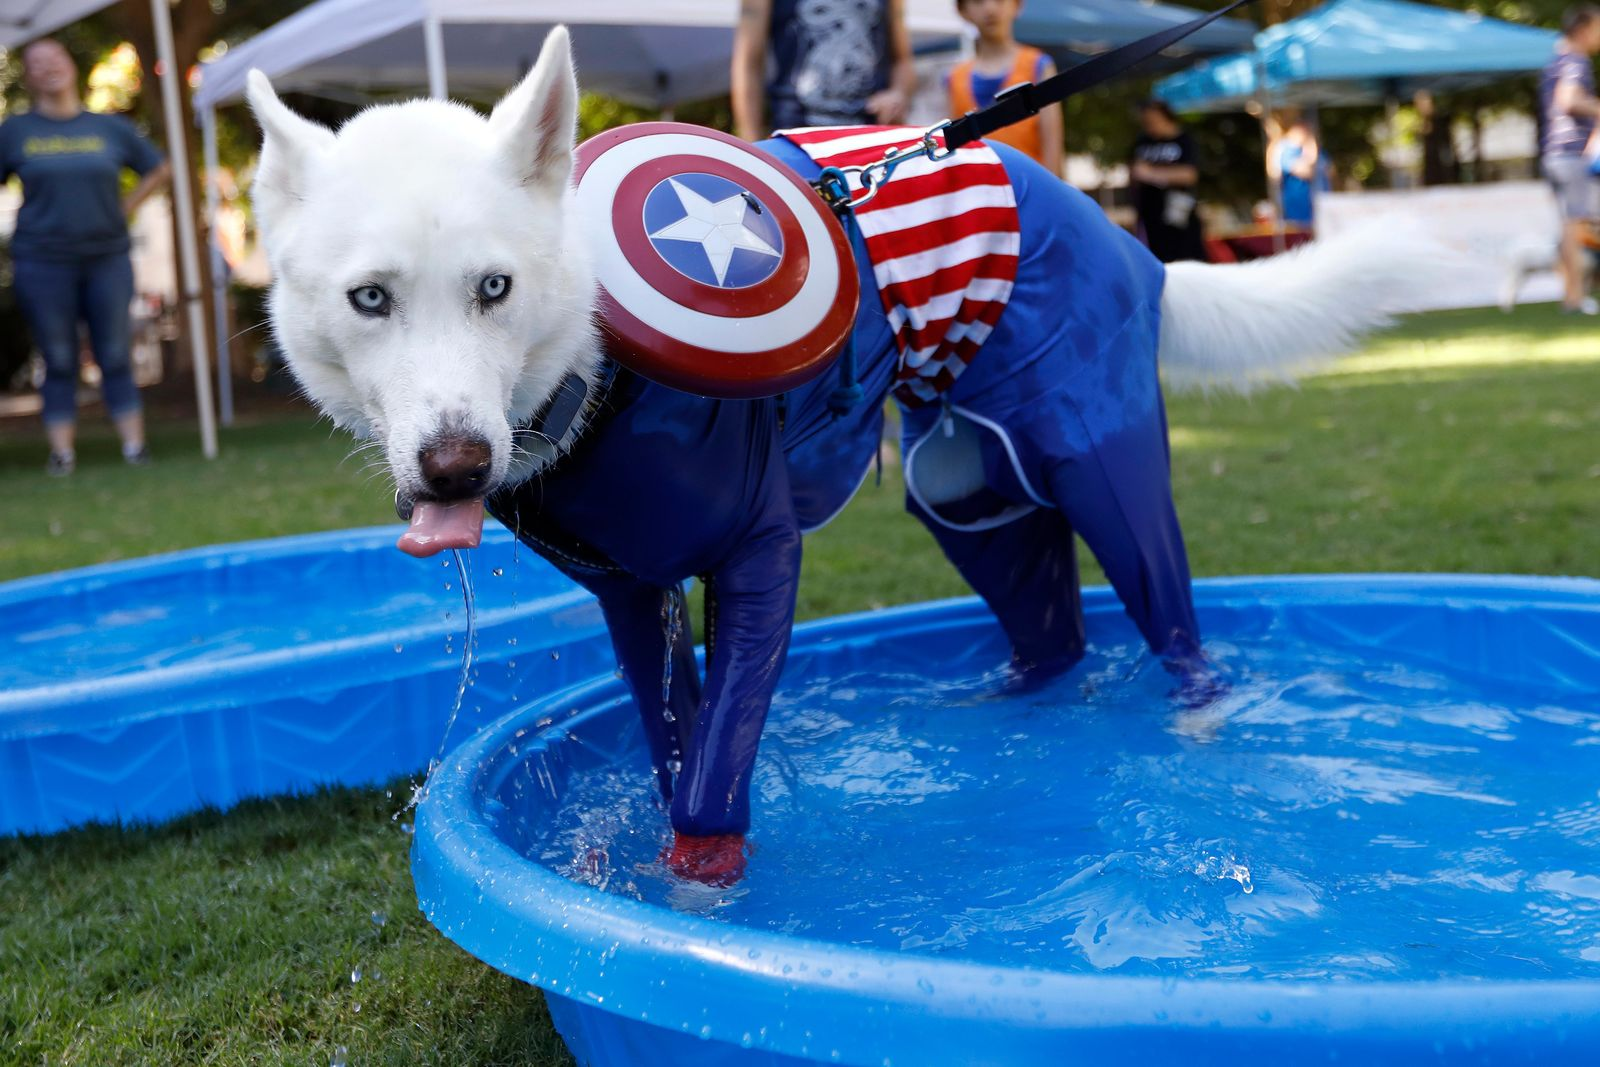 A Siberian Husky in a Captain America costume takes a dip in the pool during Doggy Con in Woodruff Park, Saturday, Aug. 17, 2019, in Atlanta. Event organizers said they set up dog cooling stations to help prevent dogs from overheating during the event, which occurred on a 90-degree (32.2 Celsius) day. (AP Photo/Andrea Smith)